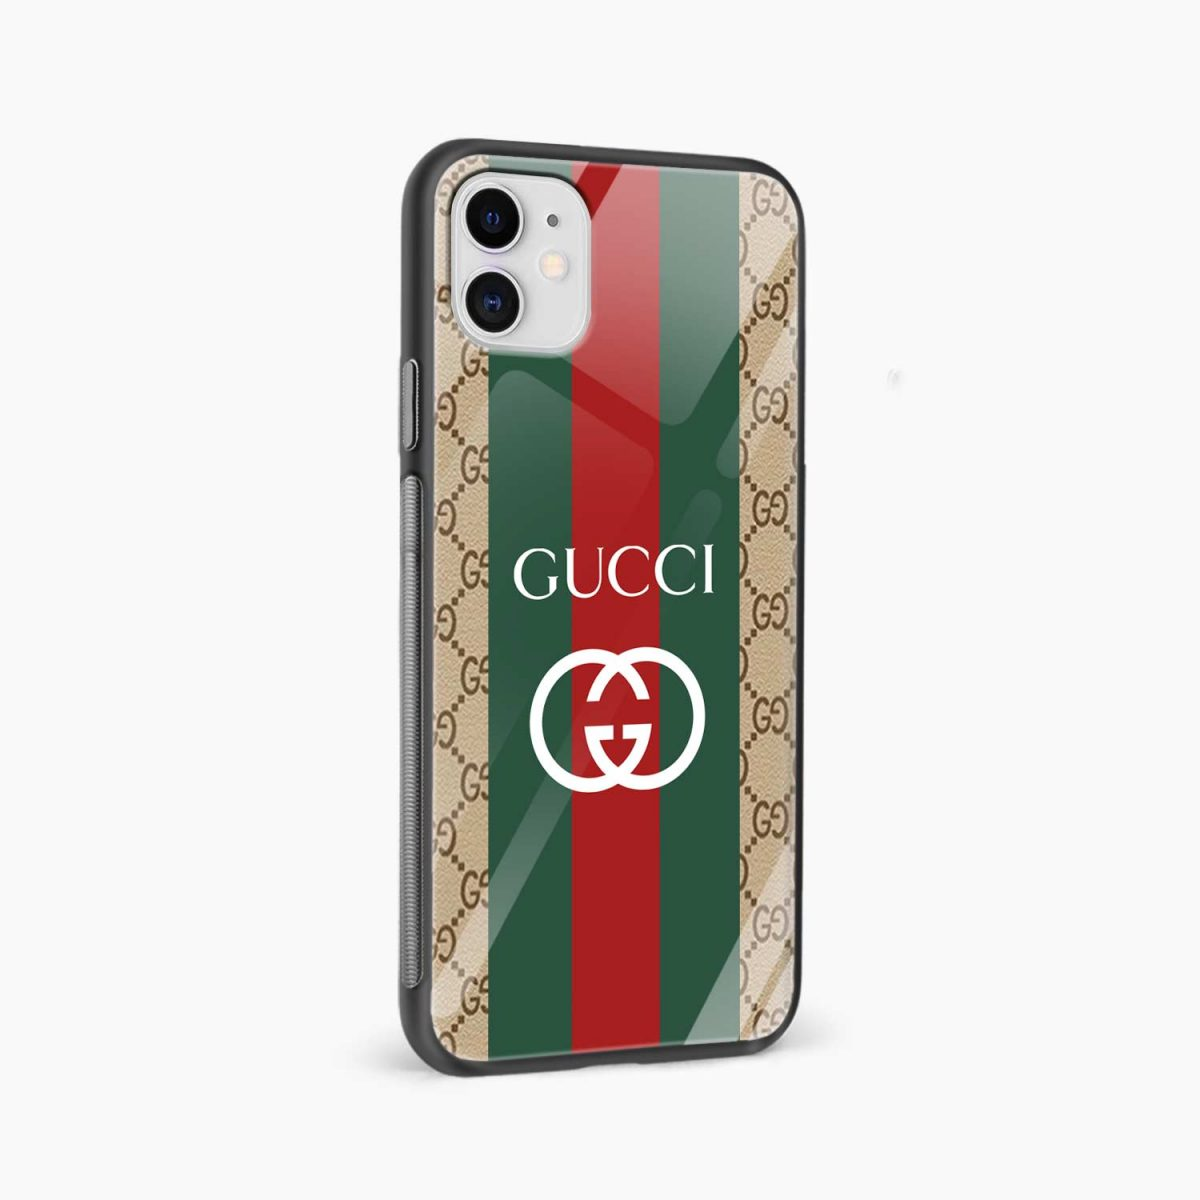 gucci strips pattern iphone back cover side view